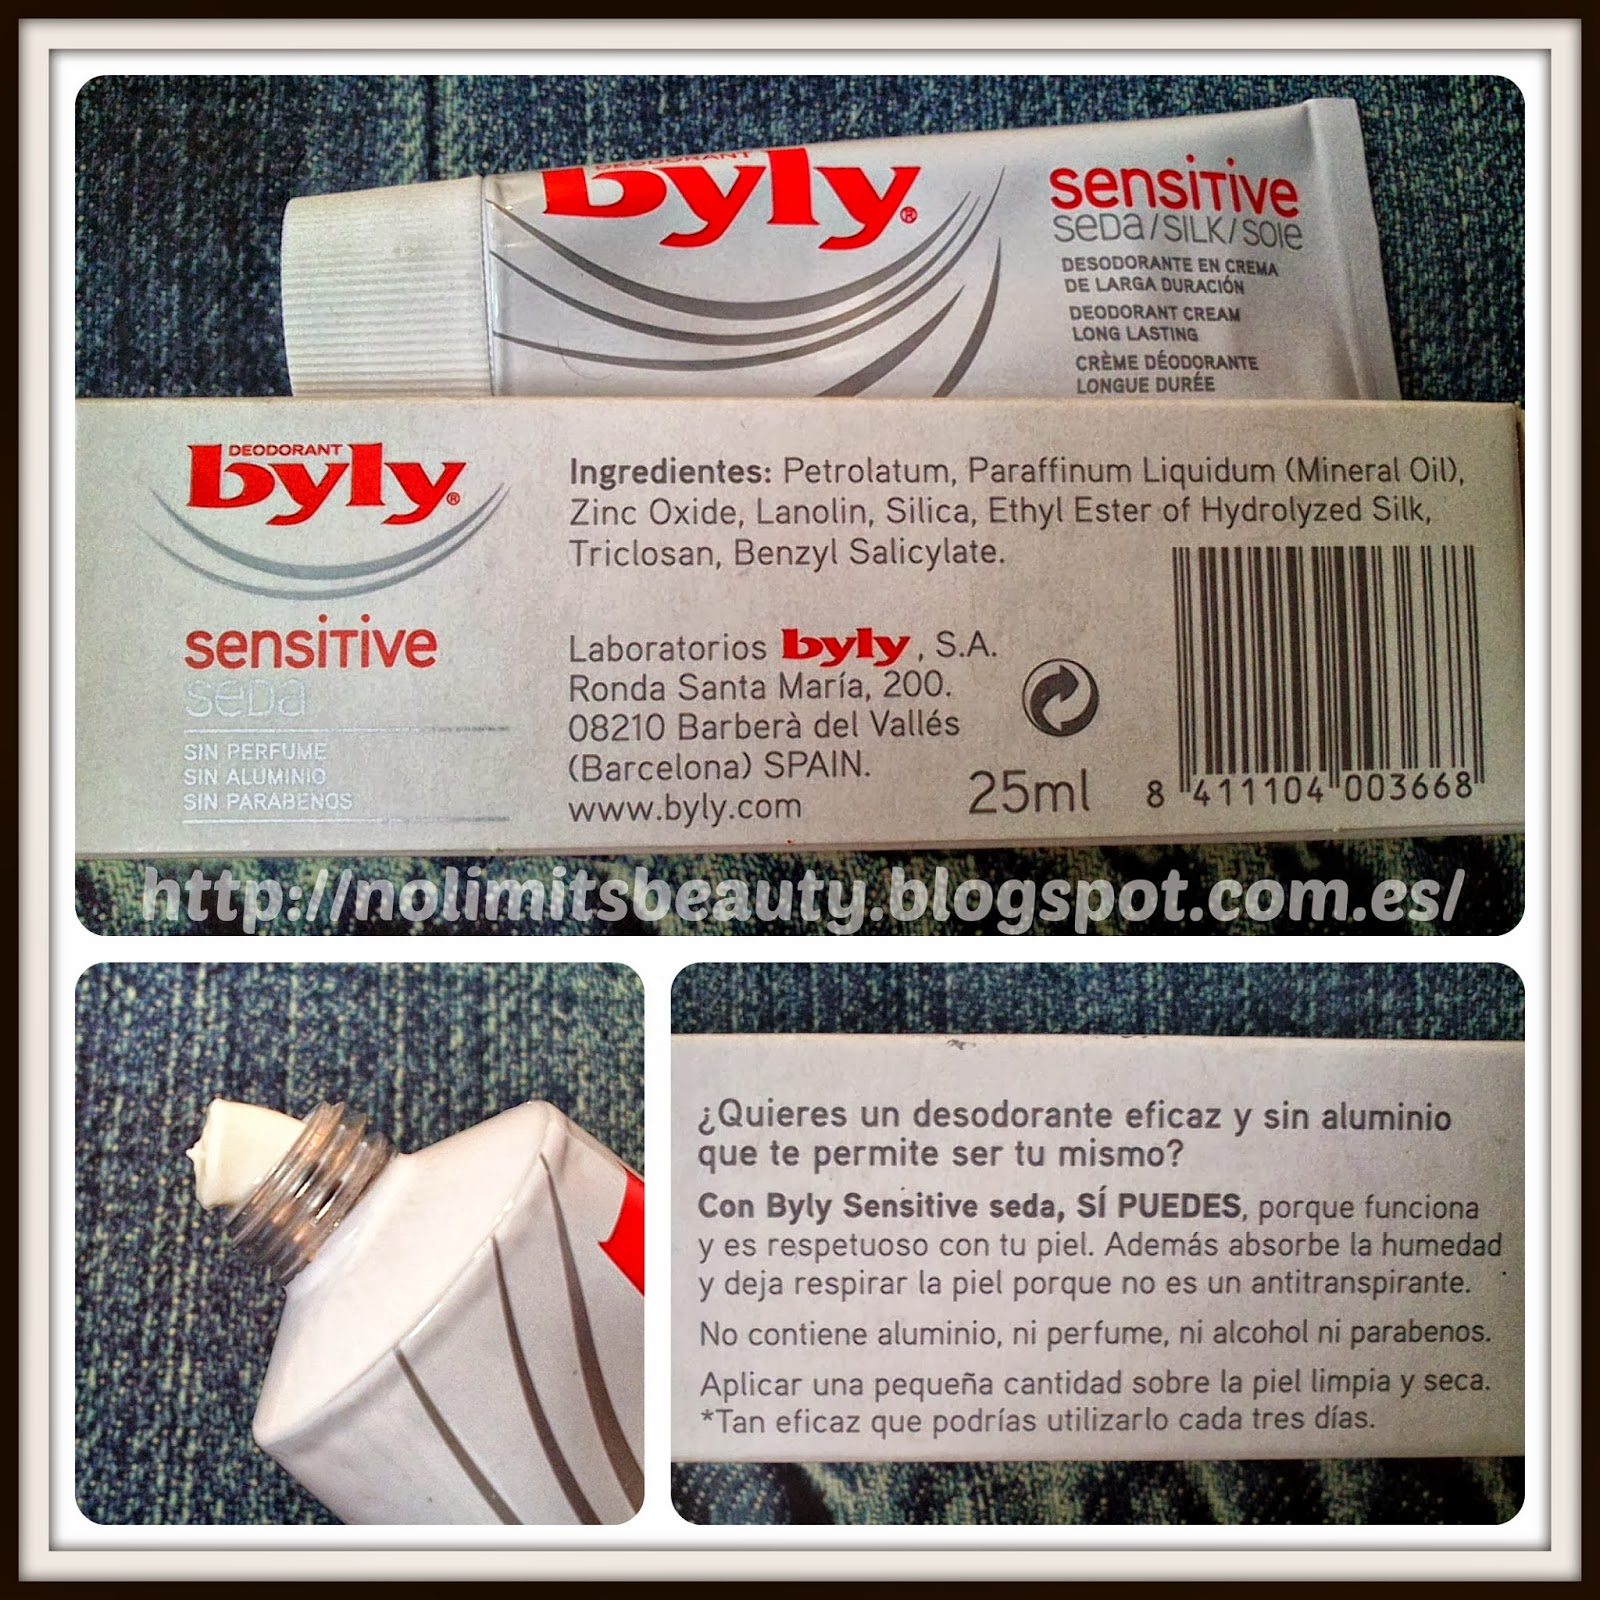 Desodorante Byly Sensitive Seda: review